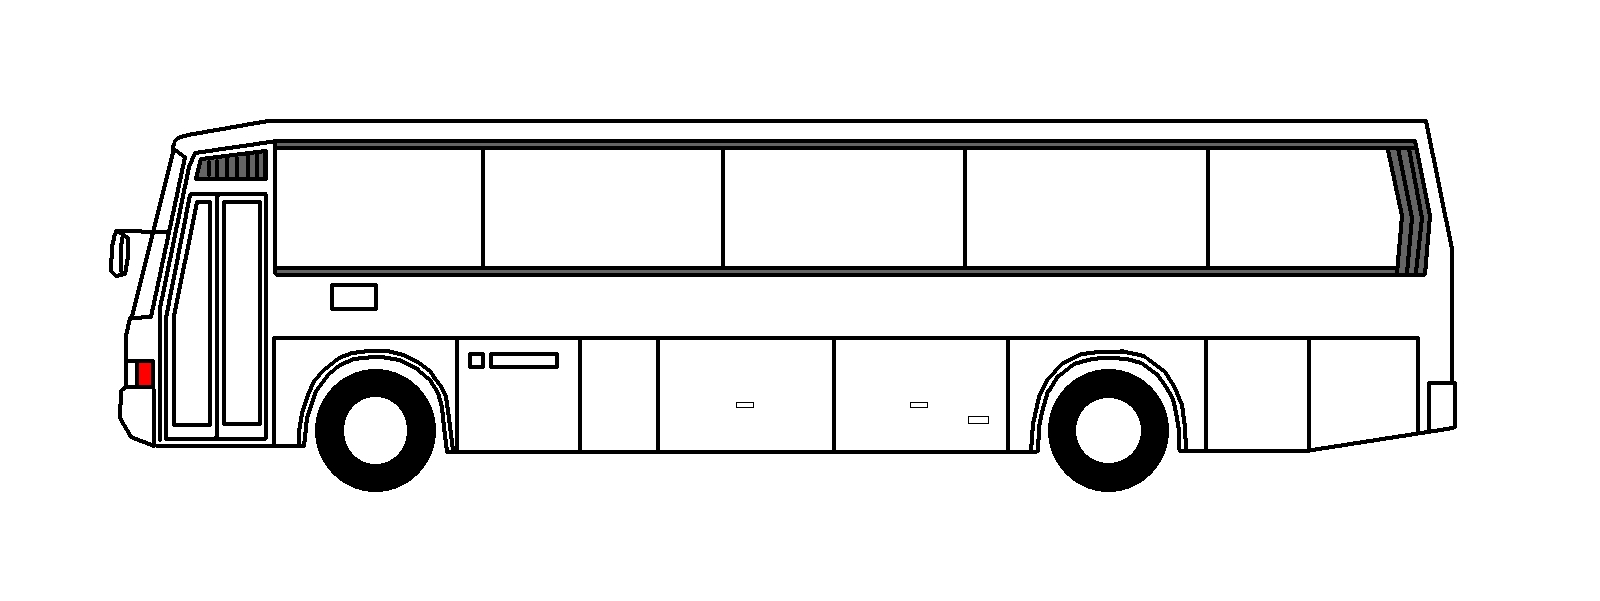 Bus clipart side view, Bus side view Transparent FREE for.